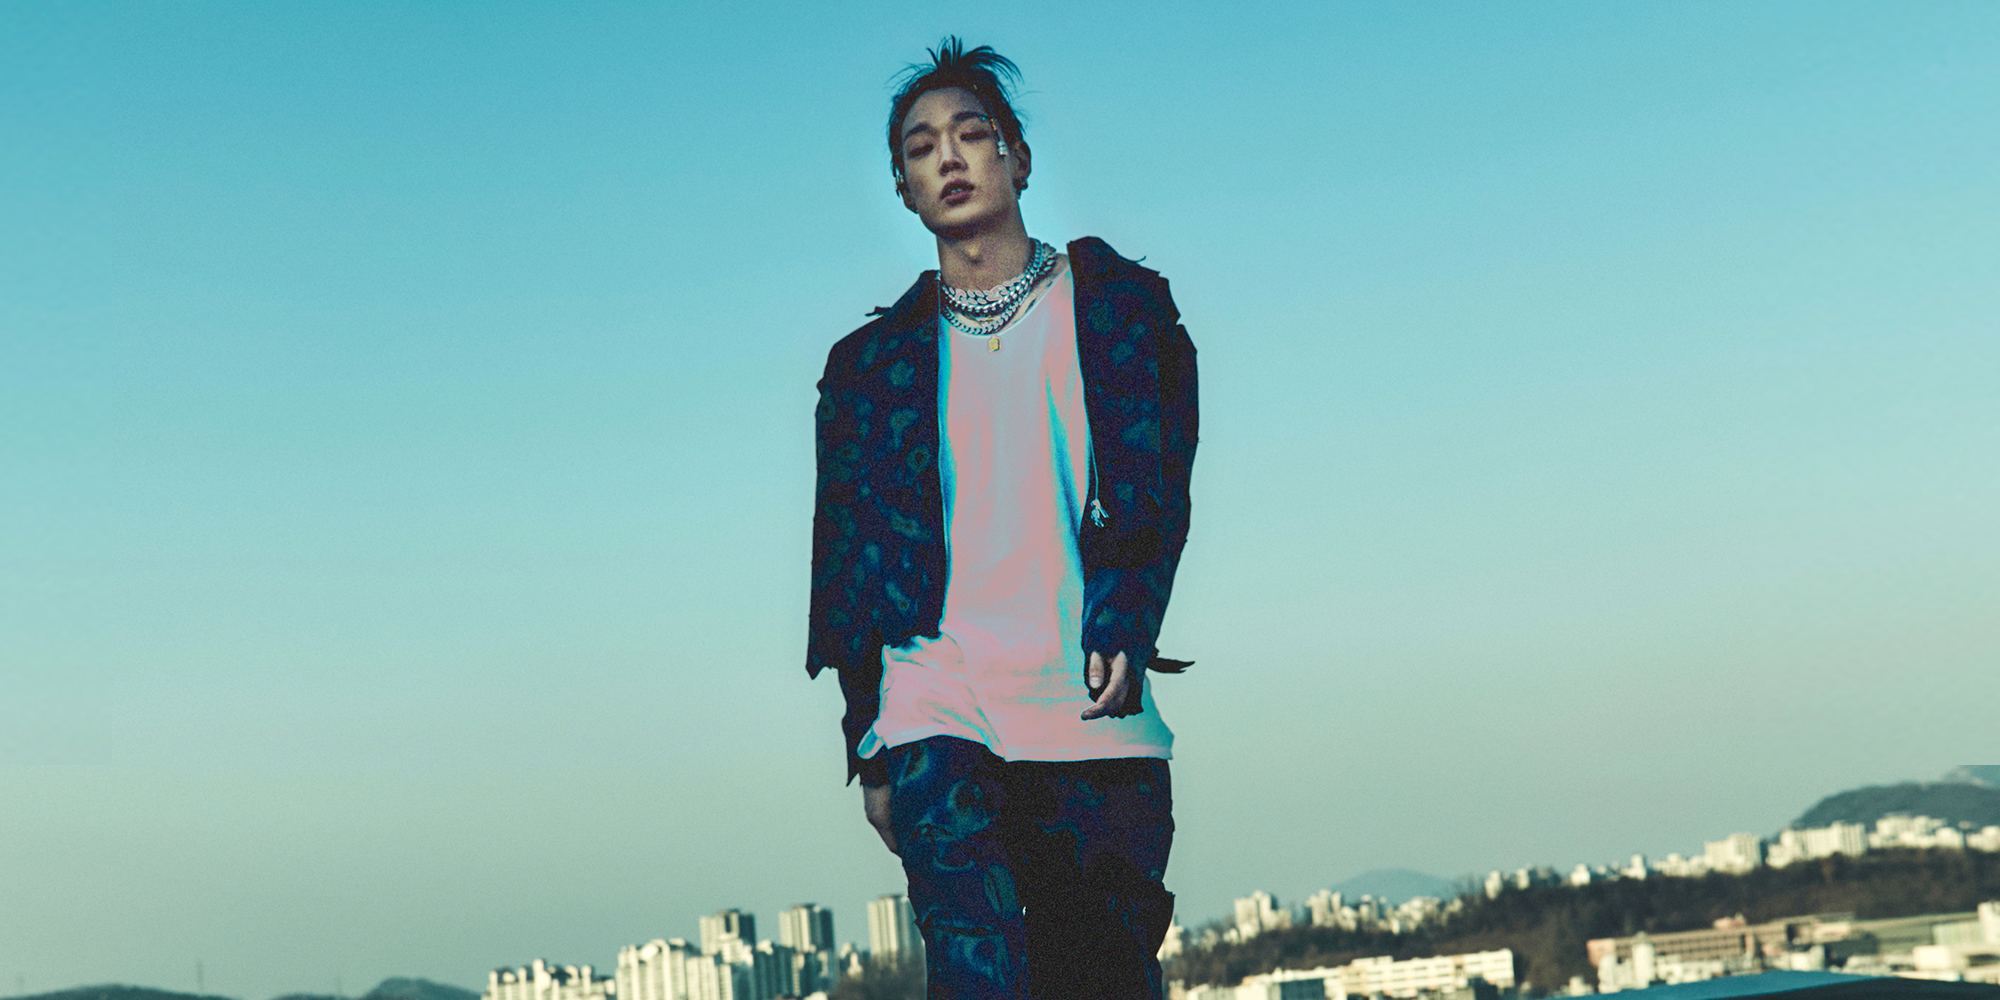 <em>BOBBY 2nd FULL ALBUM [LUCKY MAN]</em><strong>BOBBY 2nd FULL ALBUM</strong><span>[LUCKY MAN]</span>